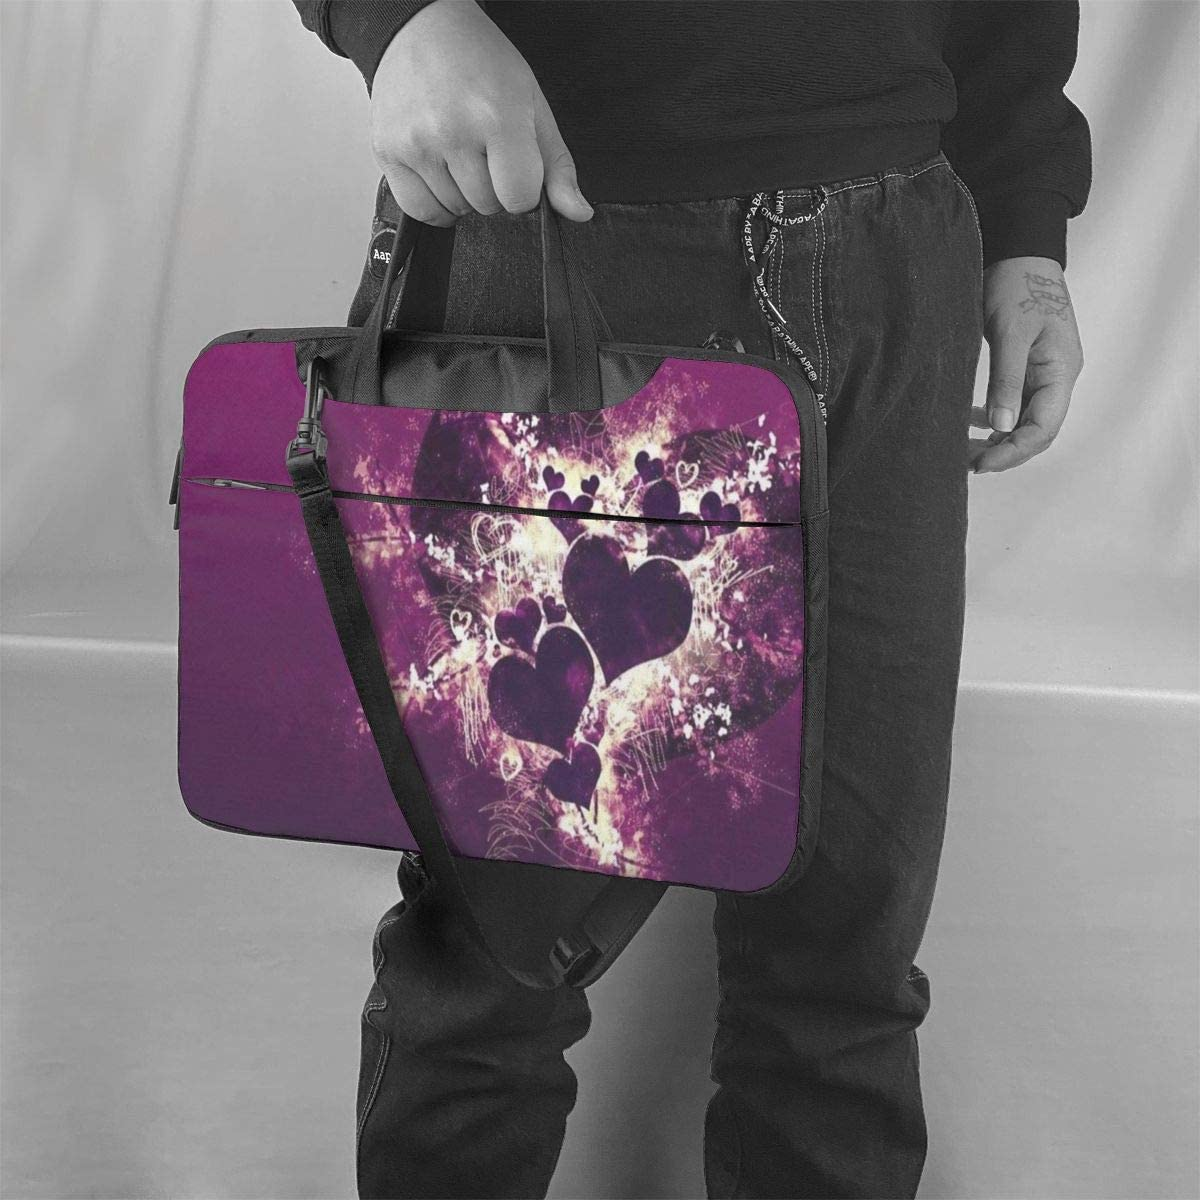 Love Heart Purple Durable Laptop Sleeve Case with Strap Fits 13-15.6in Notebook for Women NEPower Laptop Tote Bag